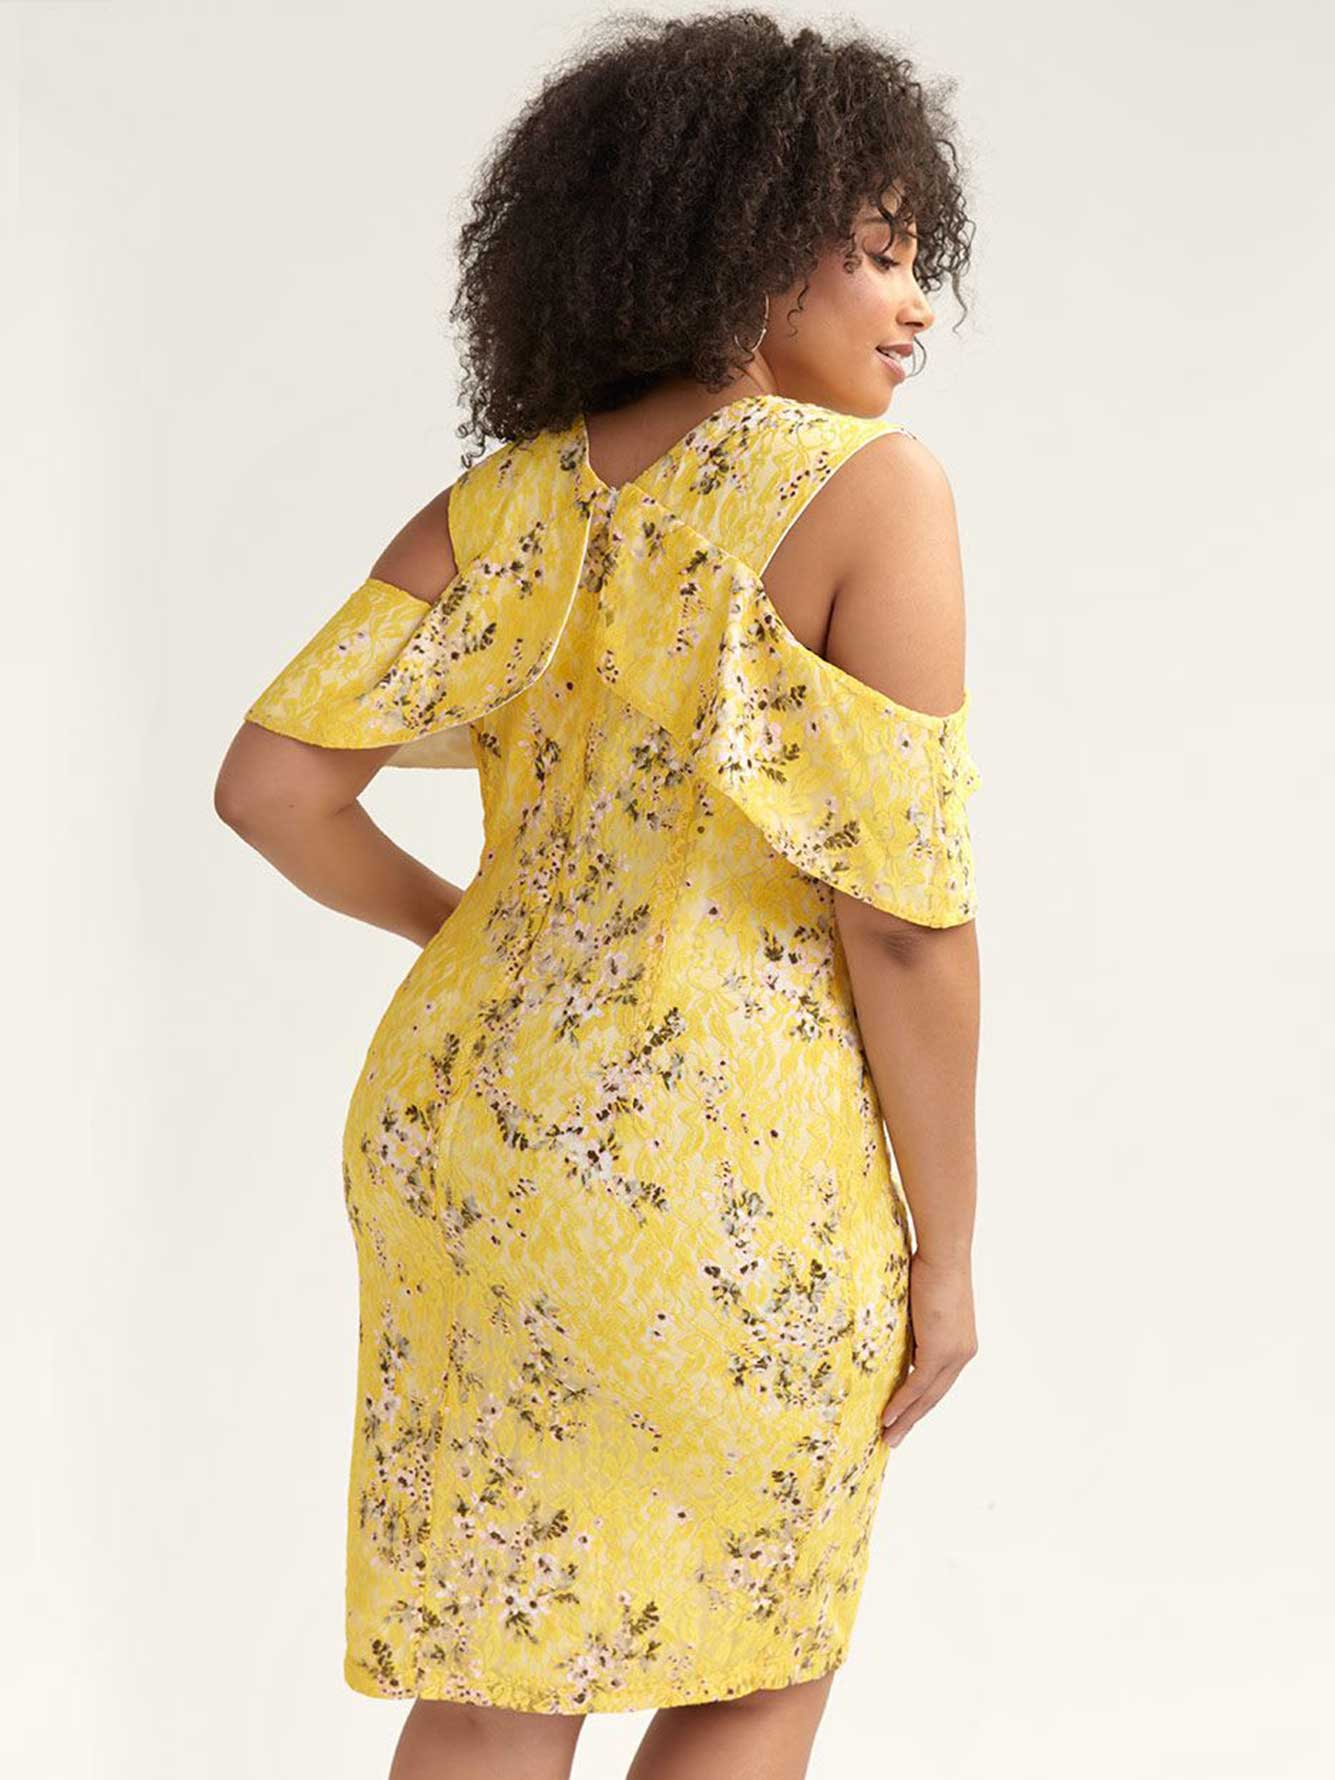 Off-the-Shoulder Yellow Lace Dress - RACHEL Rachel Roy